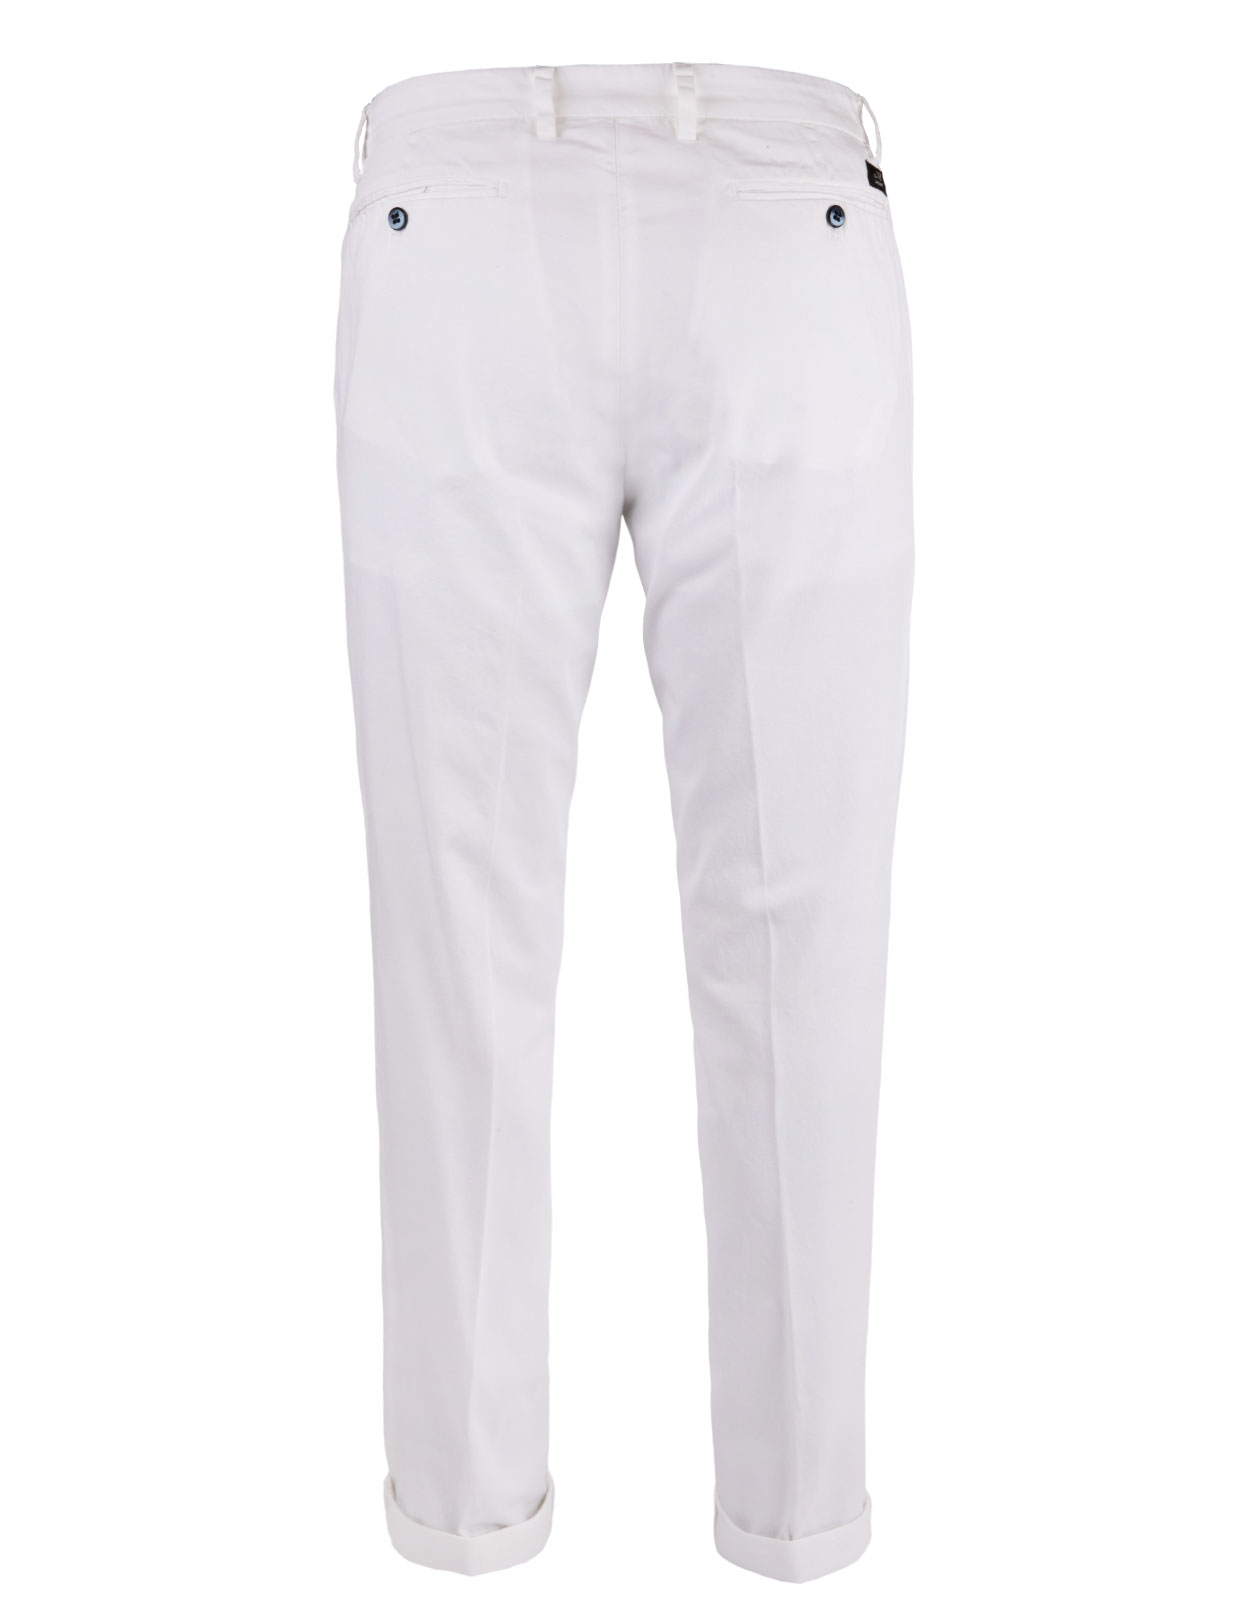 New York Regular Fit Chinos Cotton Satin Stretch White